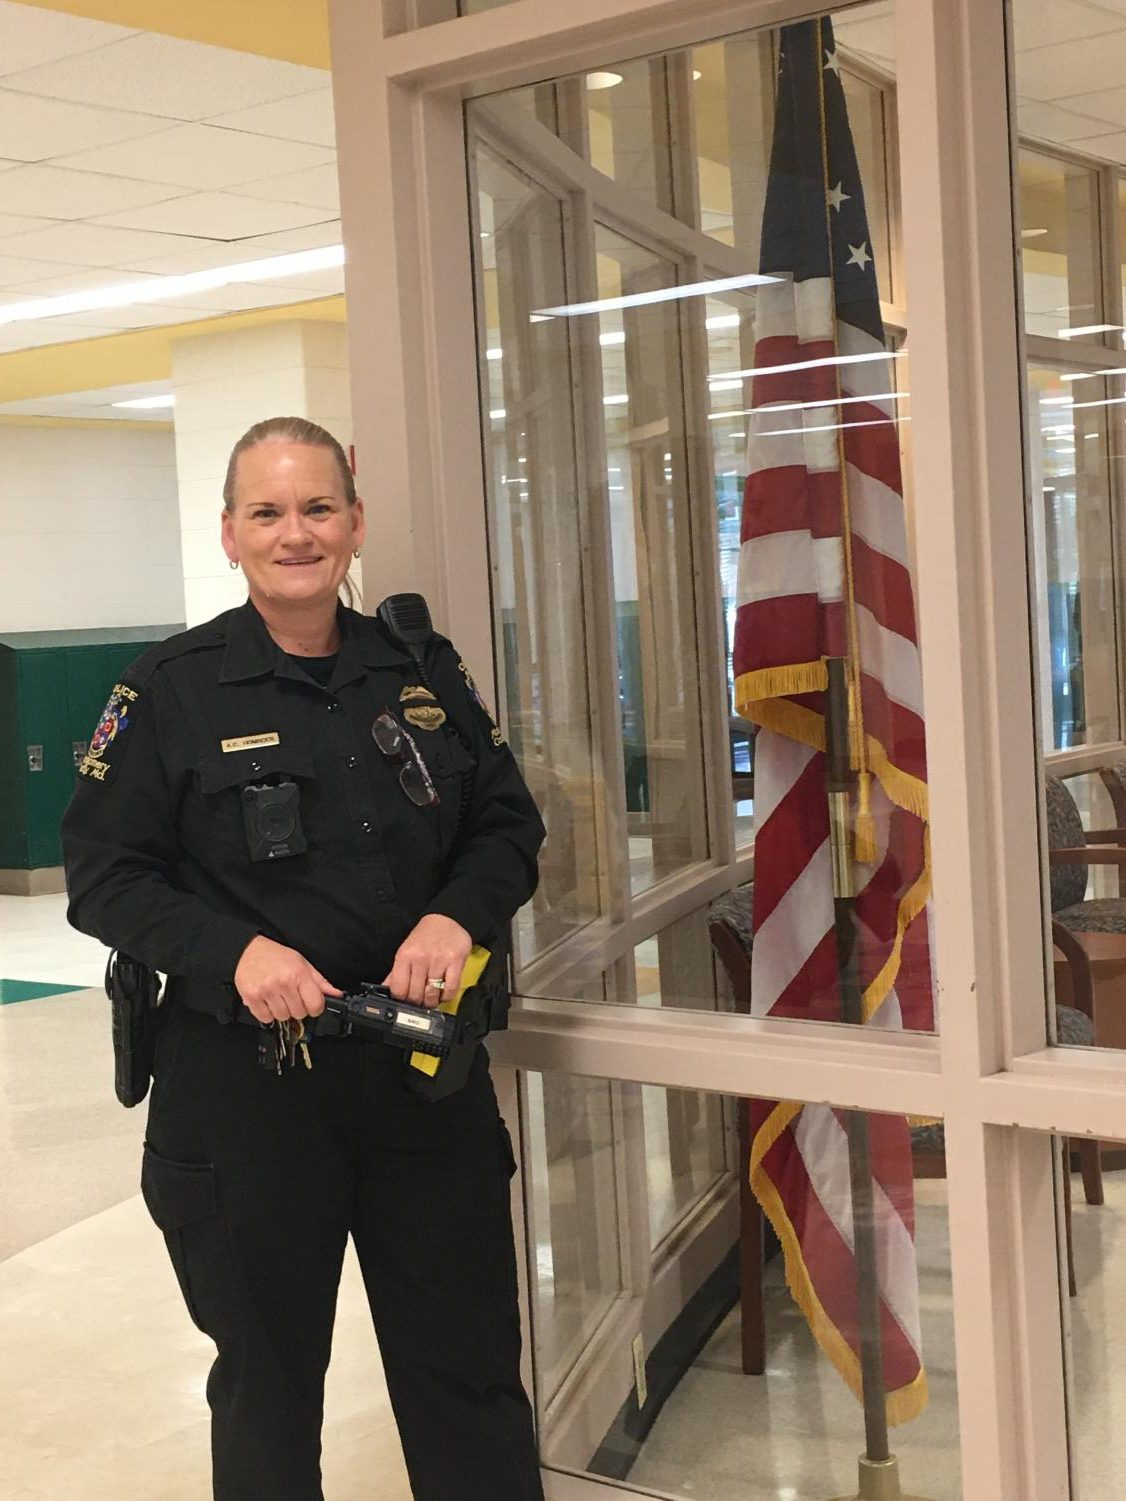 Officer Amy Homrock is the school's SRO, which is part of a program that the police and school have to keep students safe